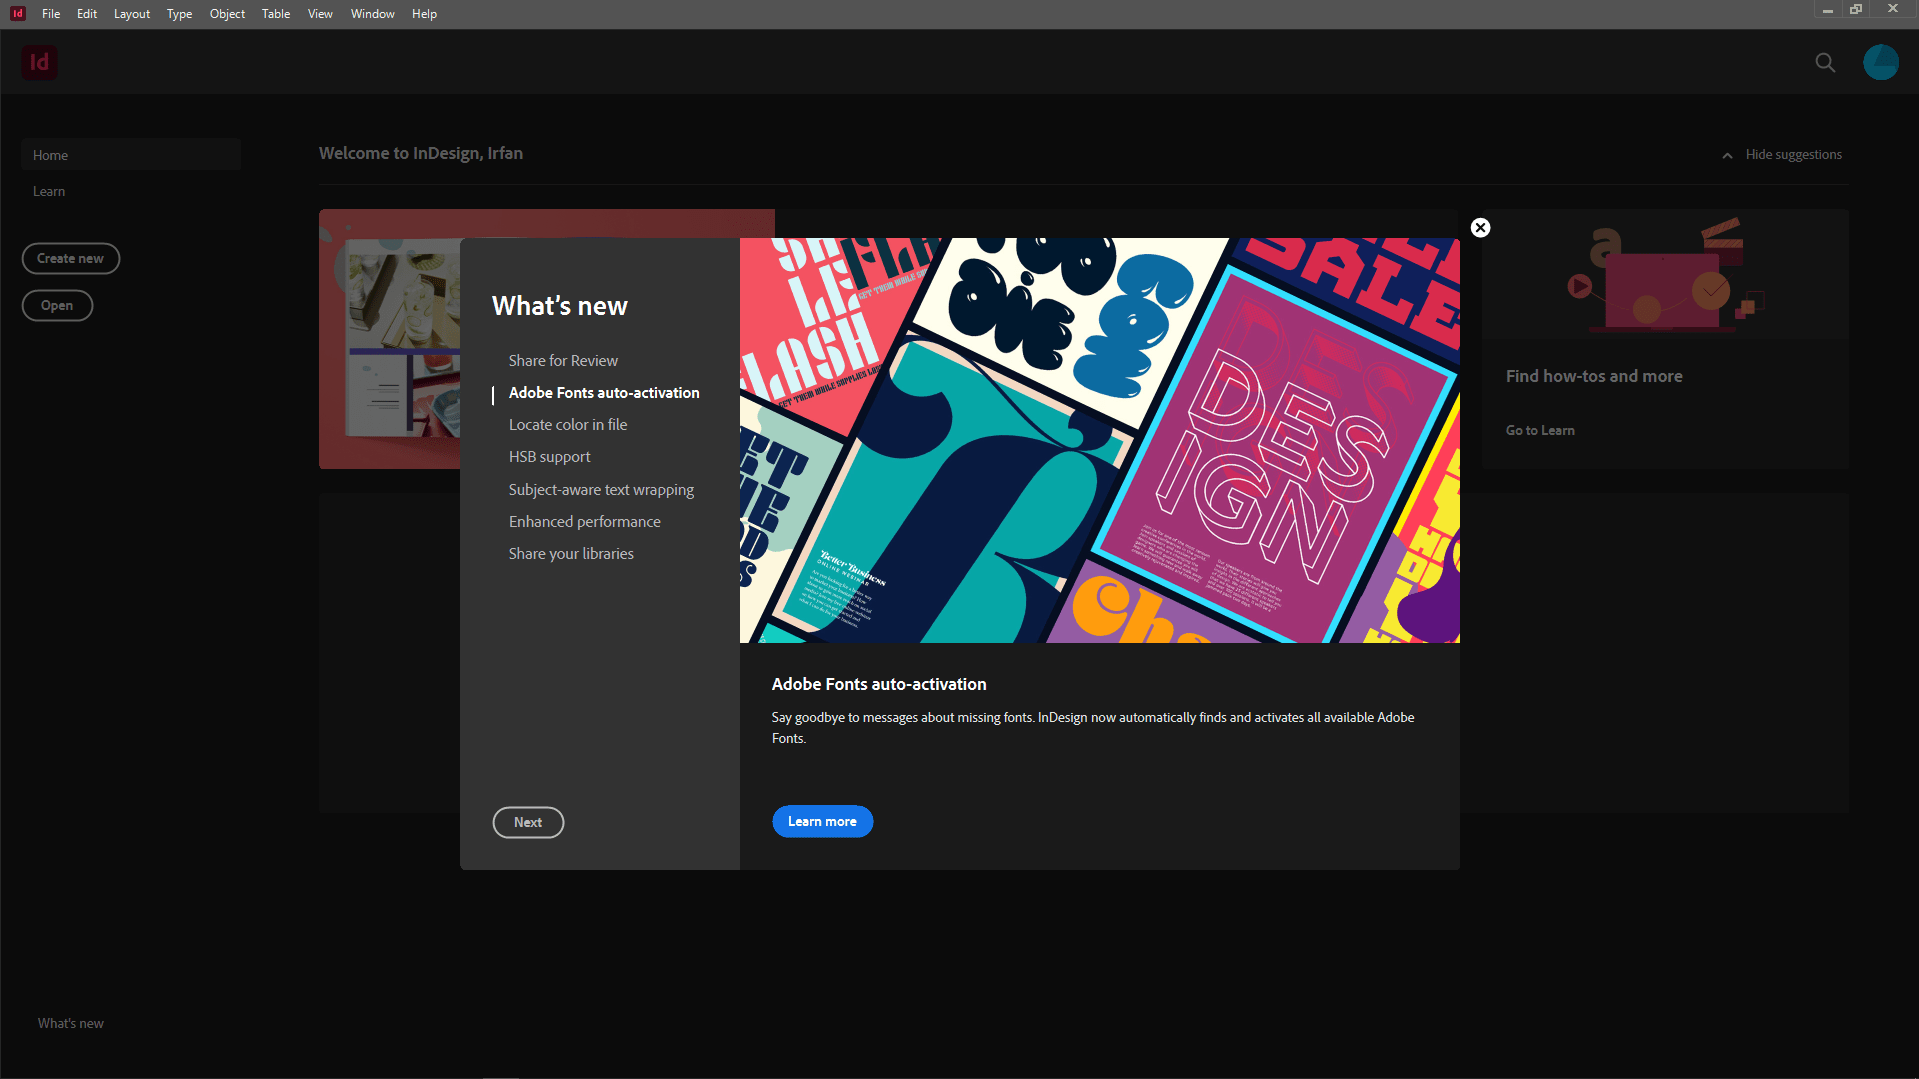 Download Gratis Adobe InDesign 2021 Full Version Terbaru